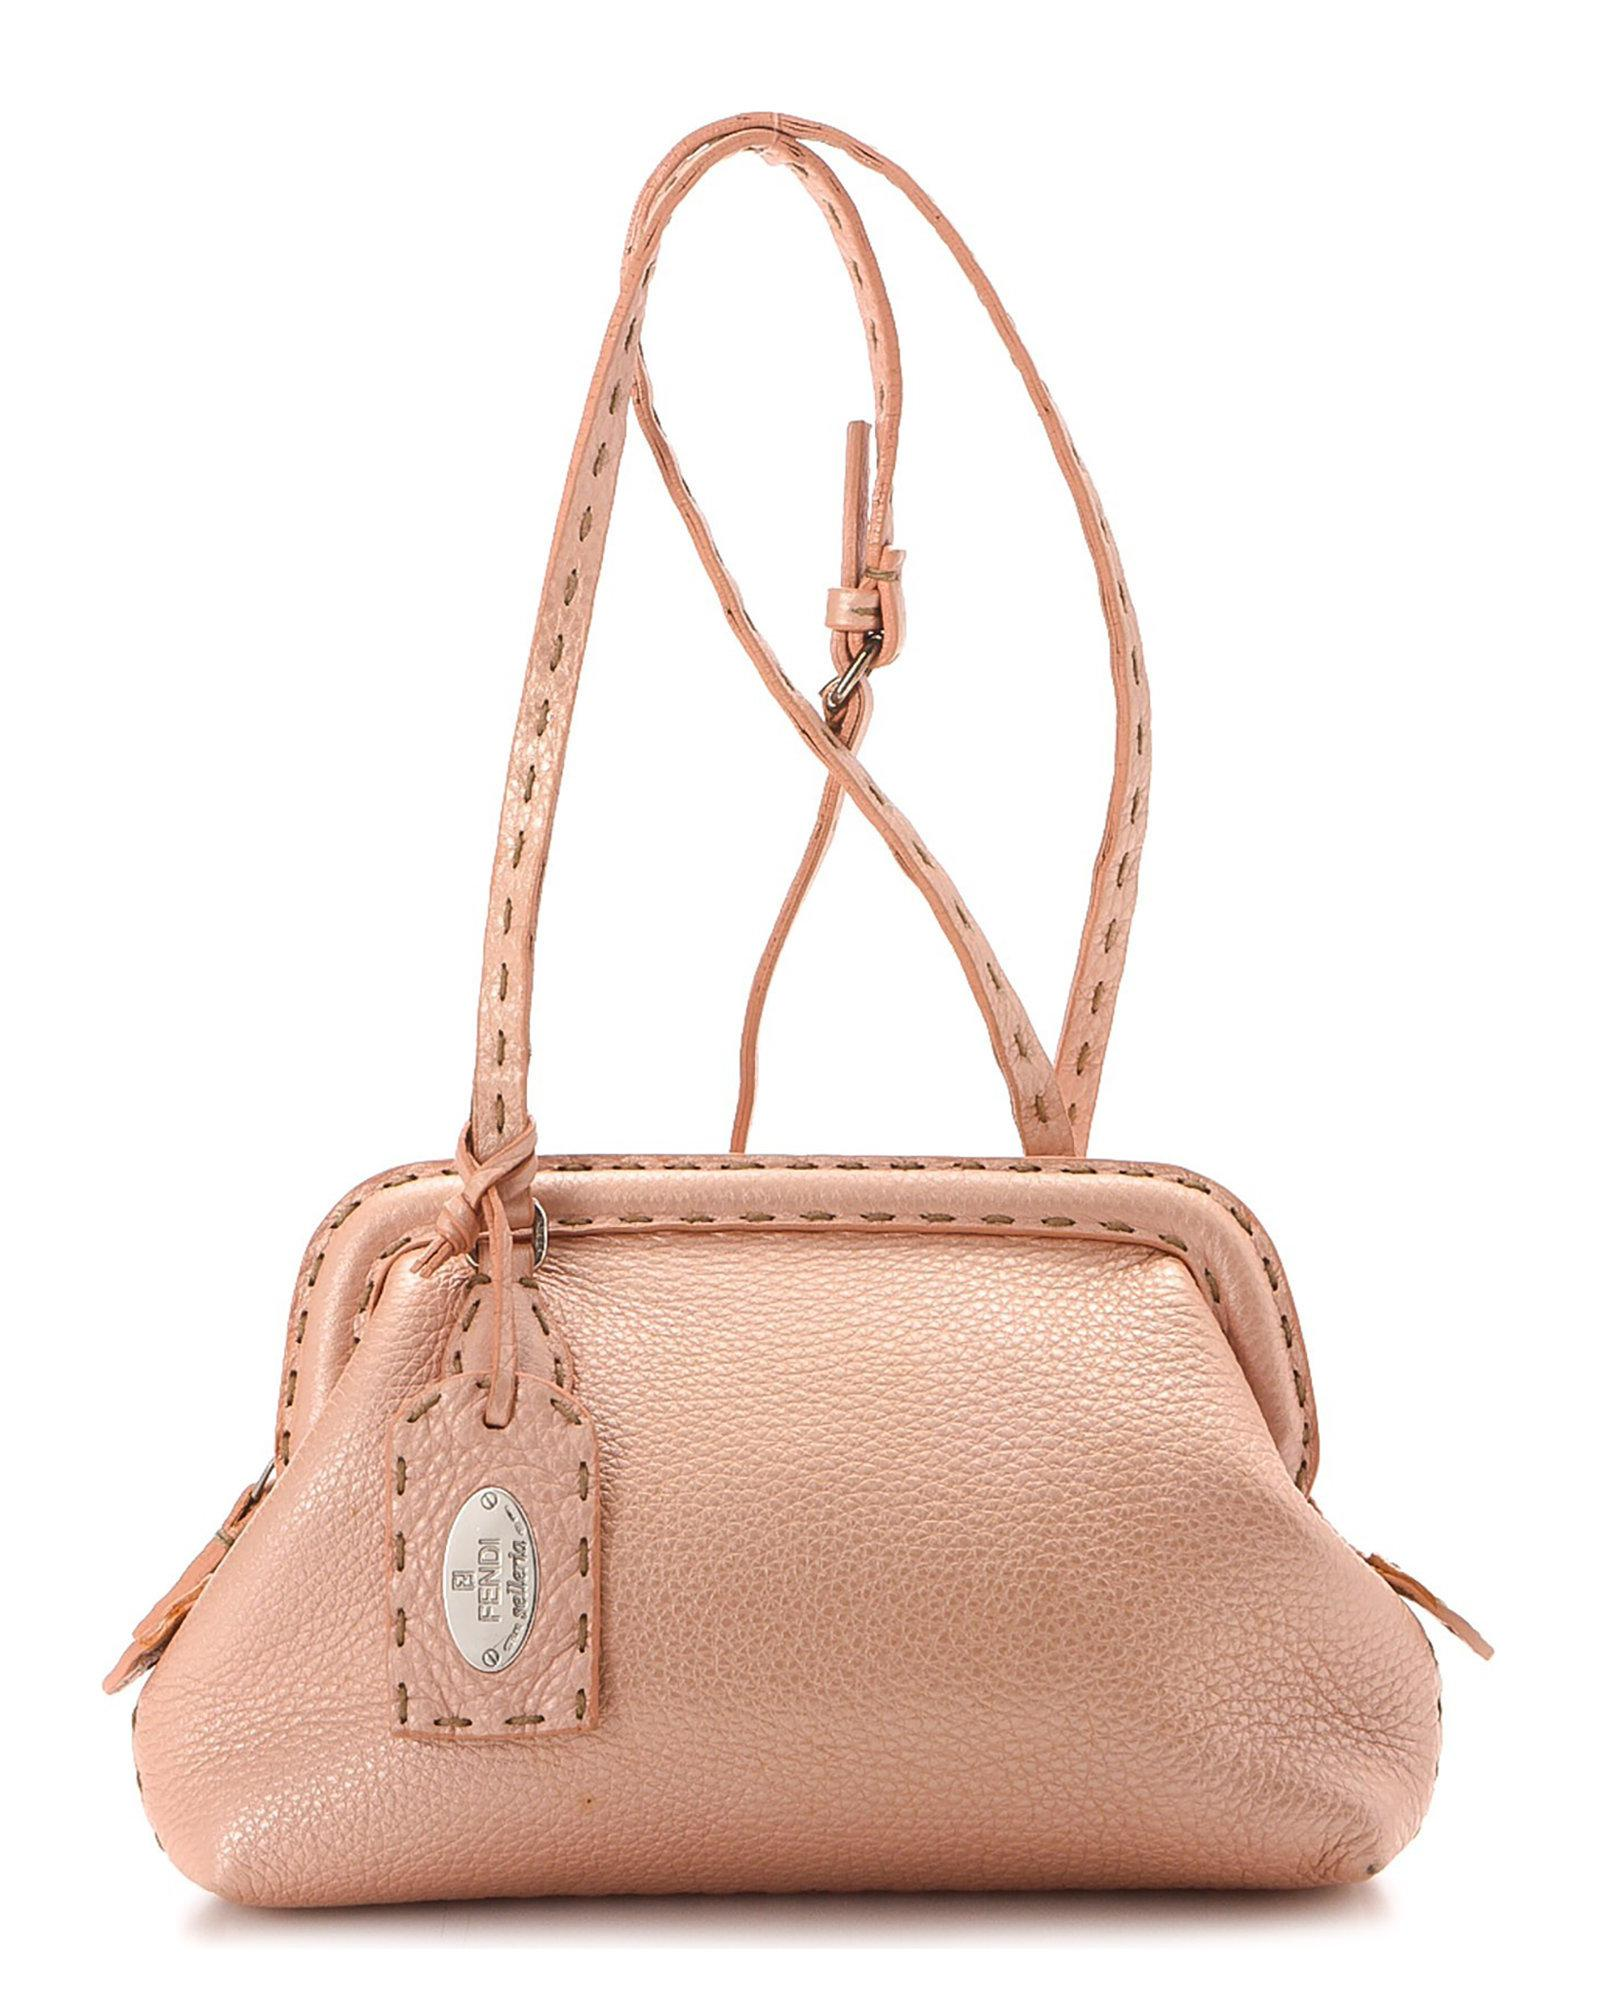 2a17a0c625 Lyst - Fendi Pink Leather Crossbody - Vintage in Pink